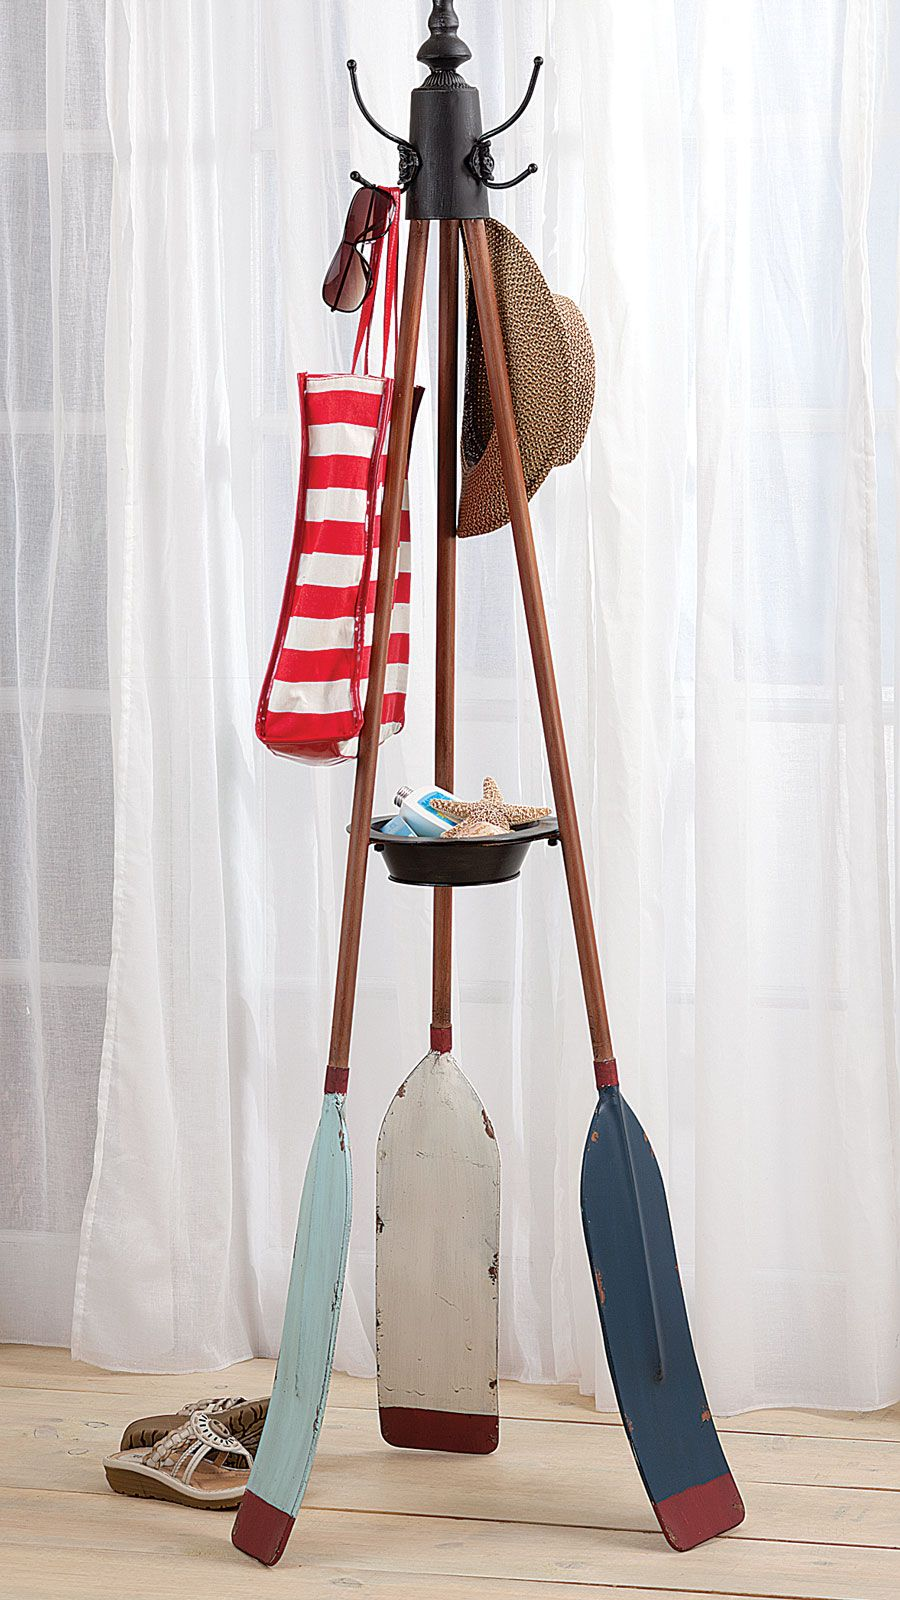 Repurpose old oars and a coat rack